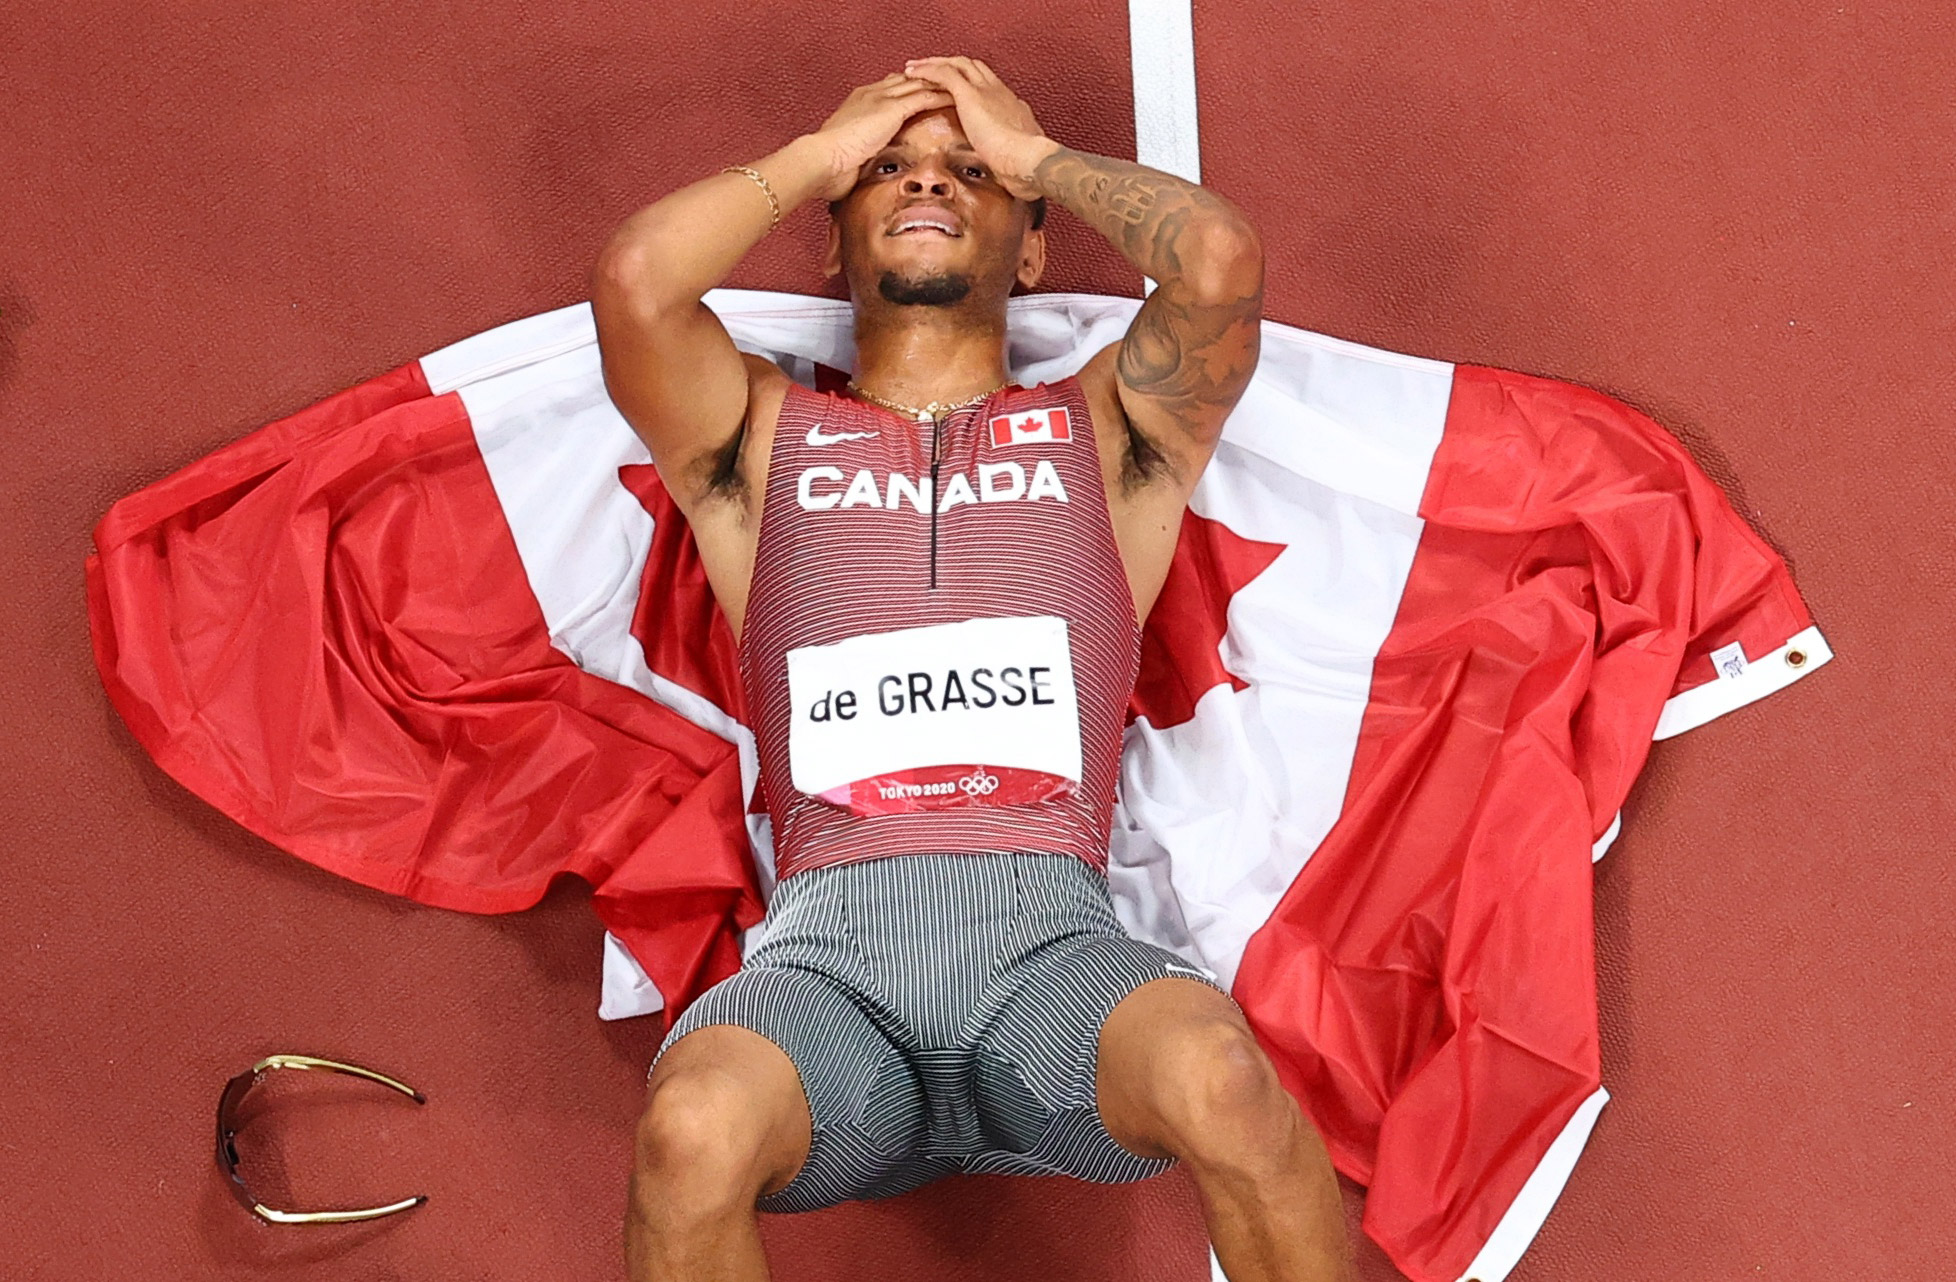 Canadian sprinter Andre De Grasse lies on the track after winning the 200-meter final on Wednesday, August 4. It's the first Olympic gold for De Grasse, who now has five medals in all.